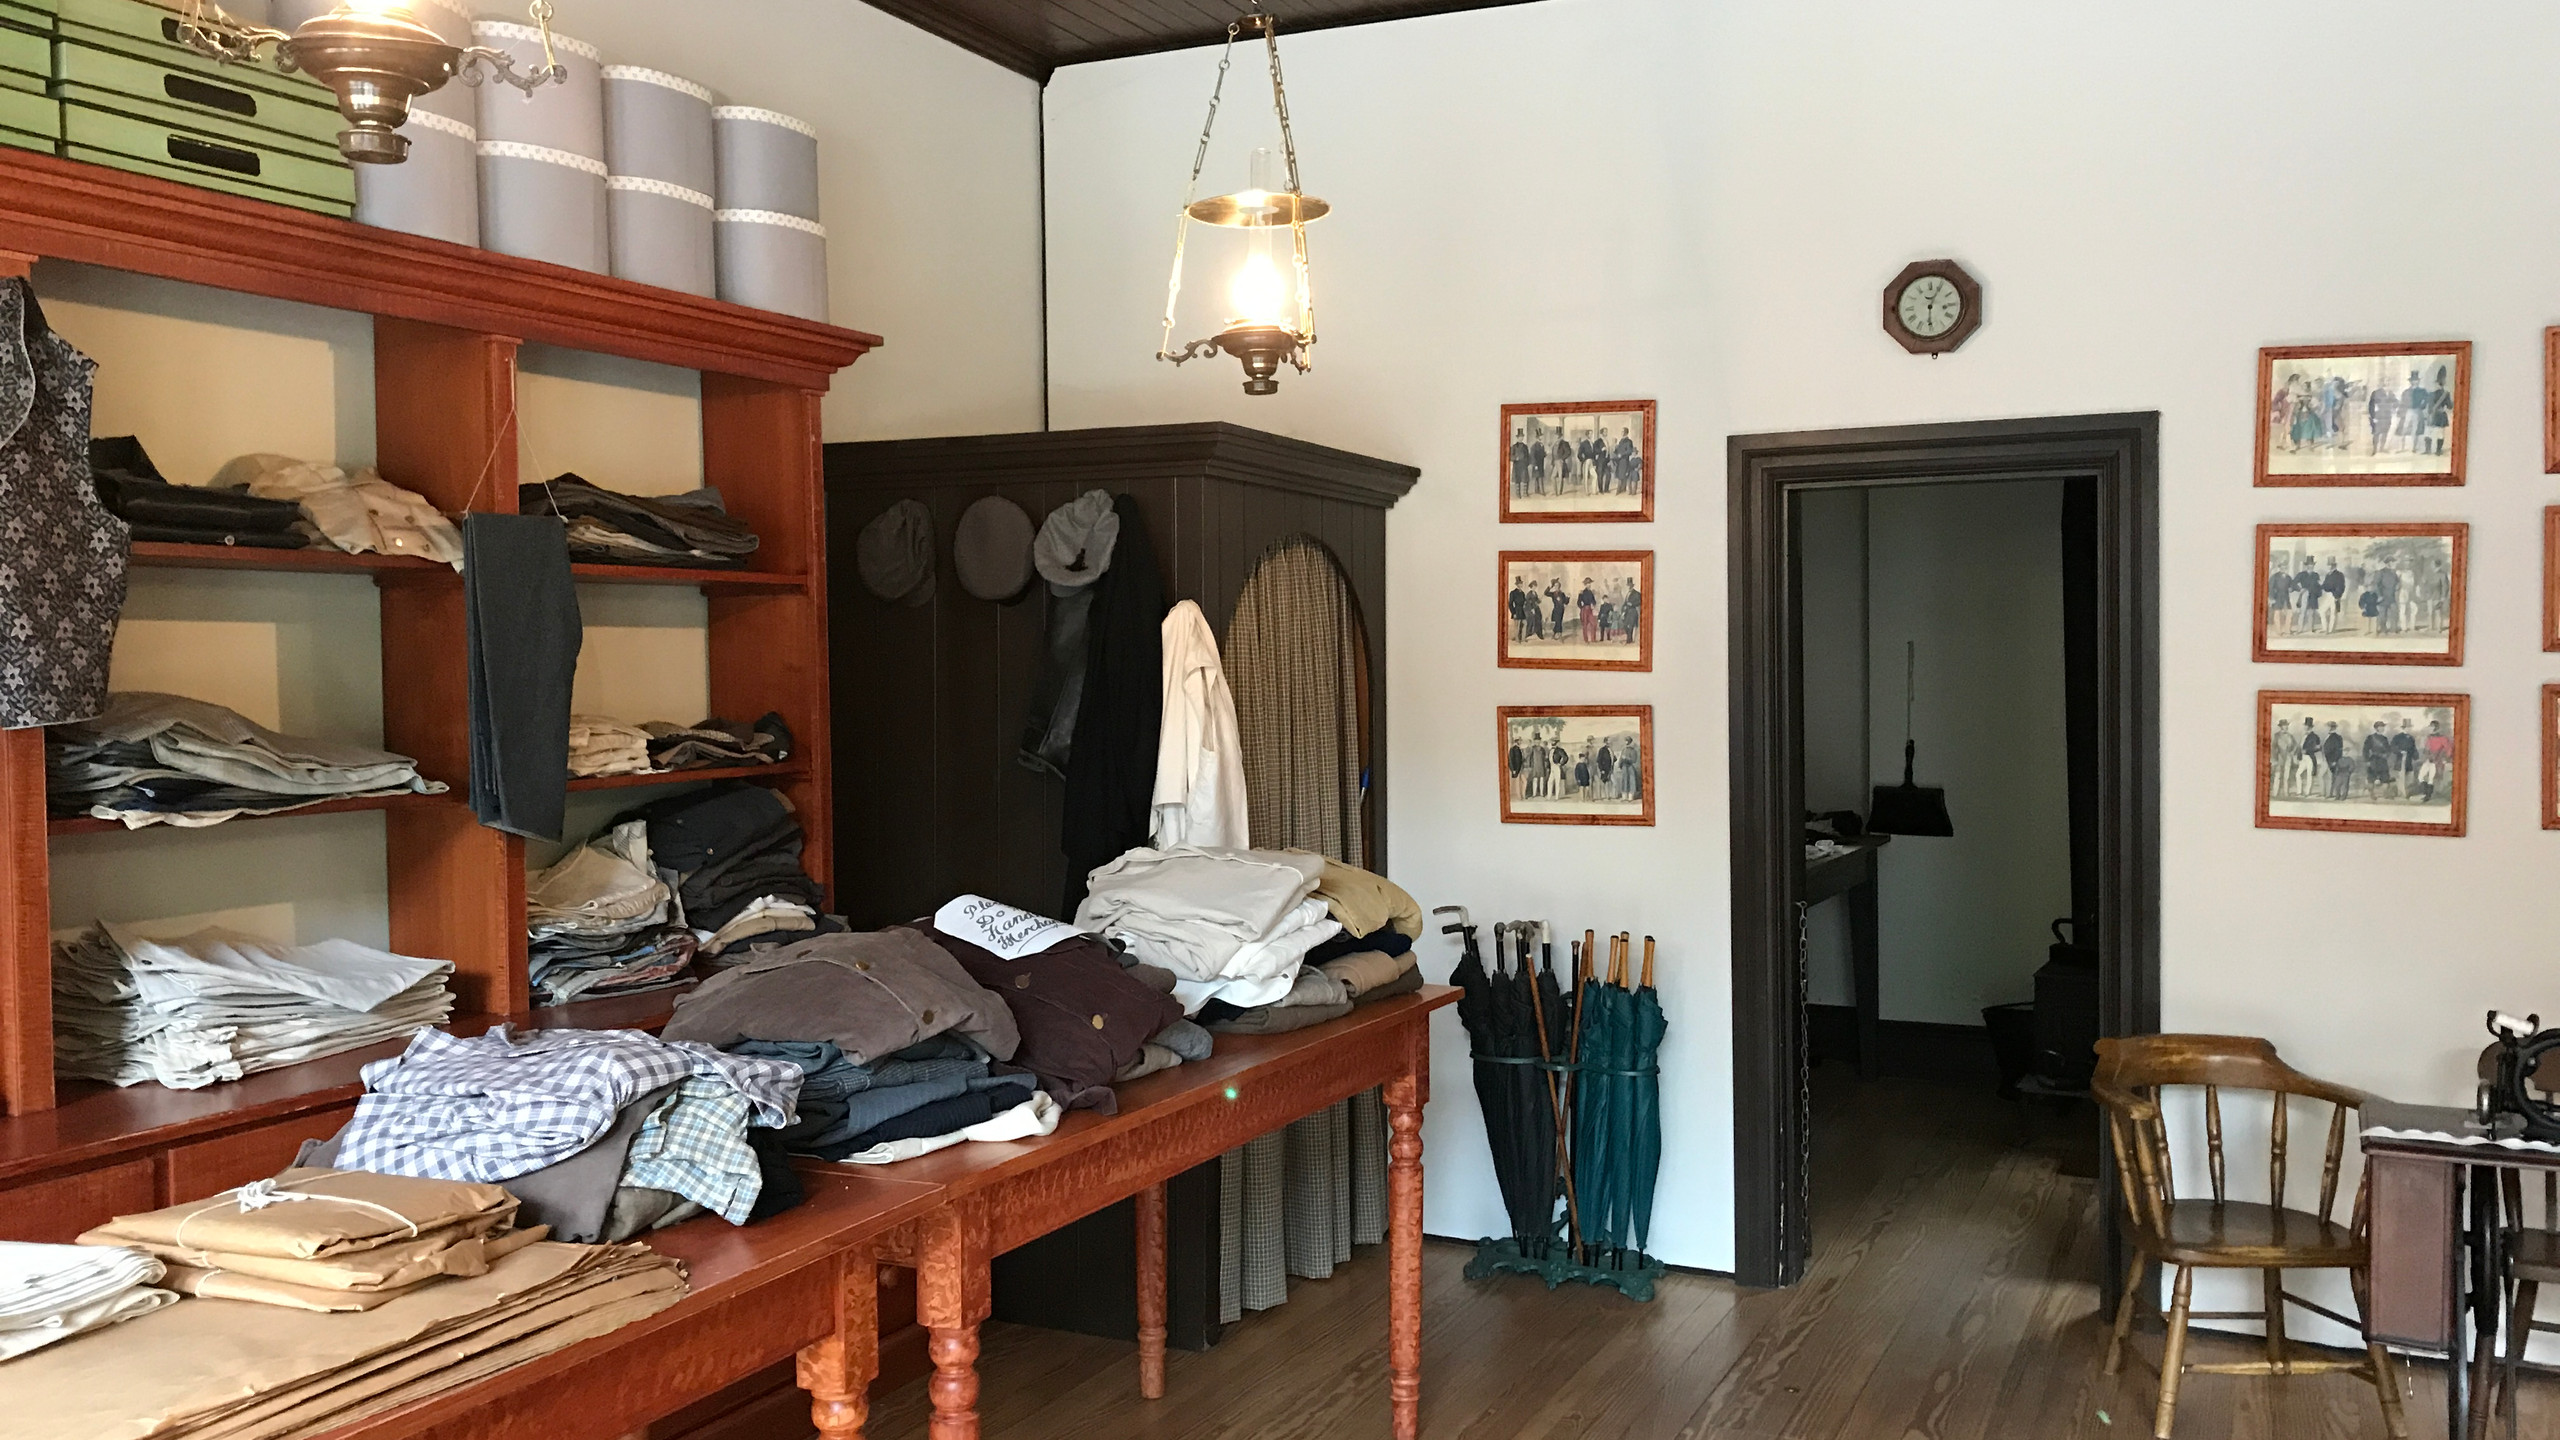 Philip Frankel and Co. Clothers